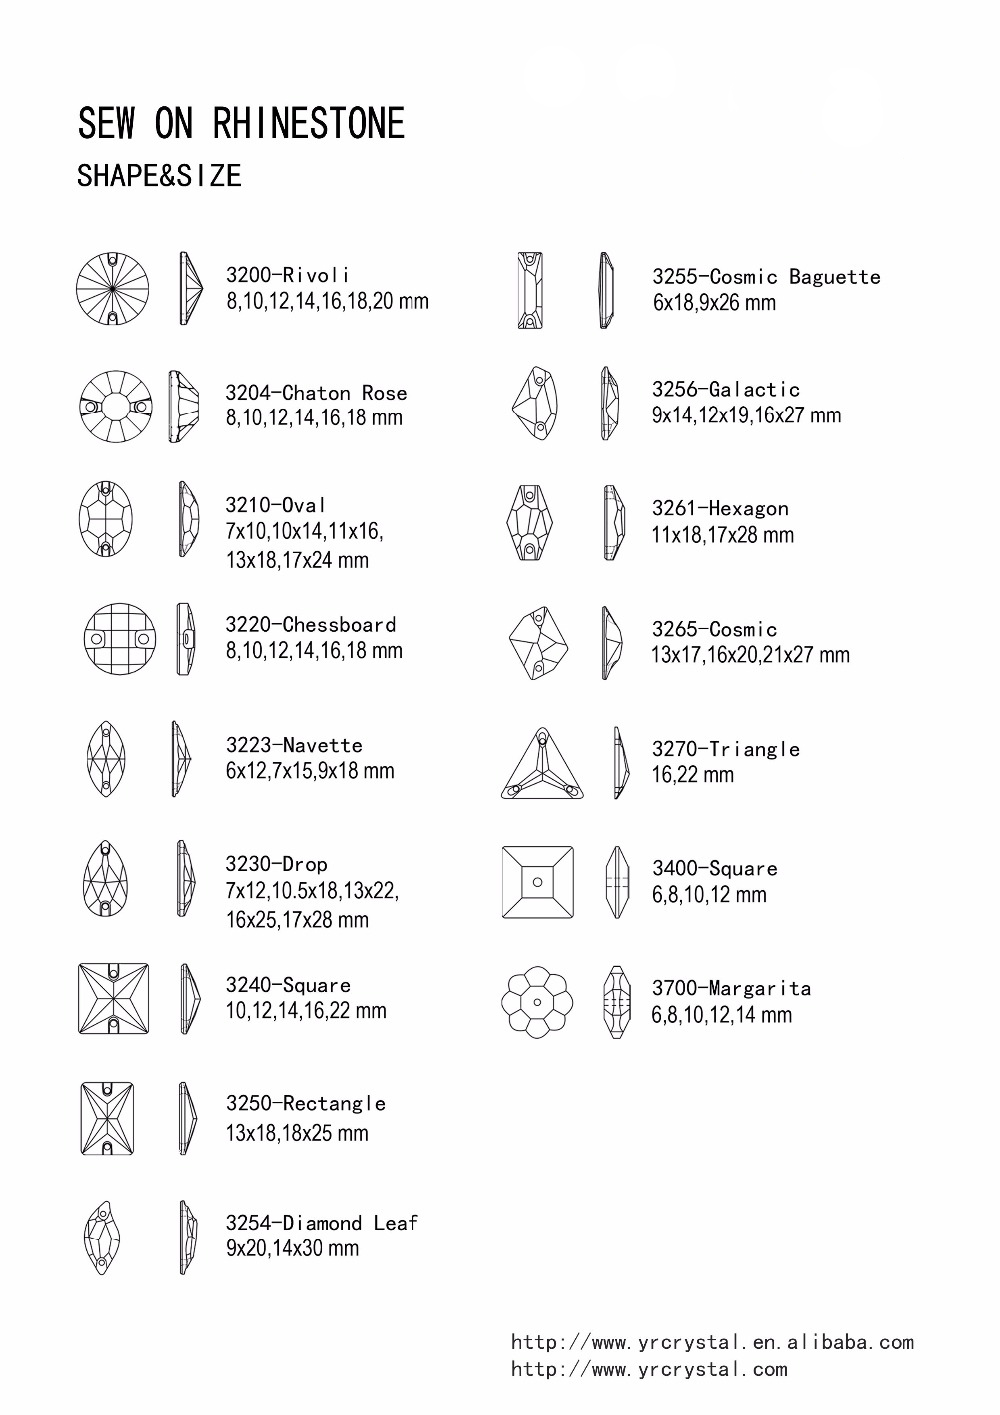 Sew On Shape Chart